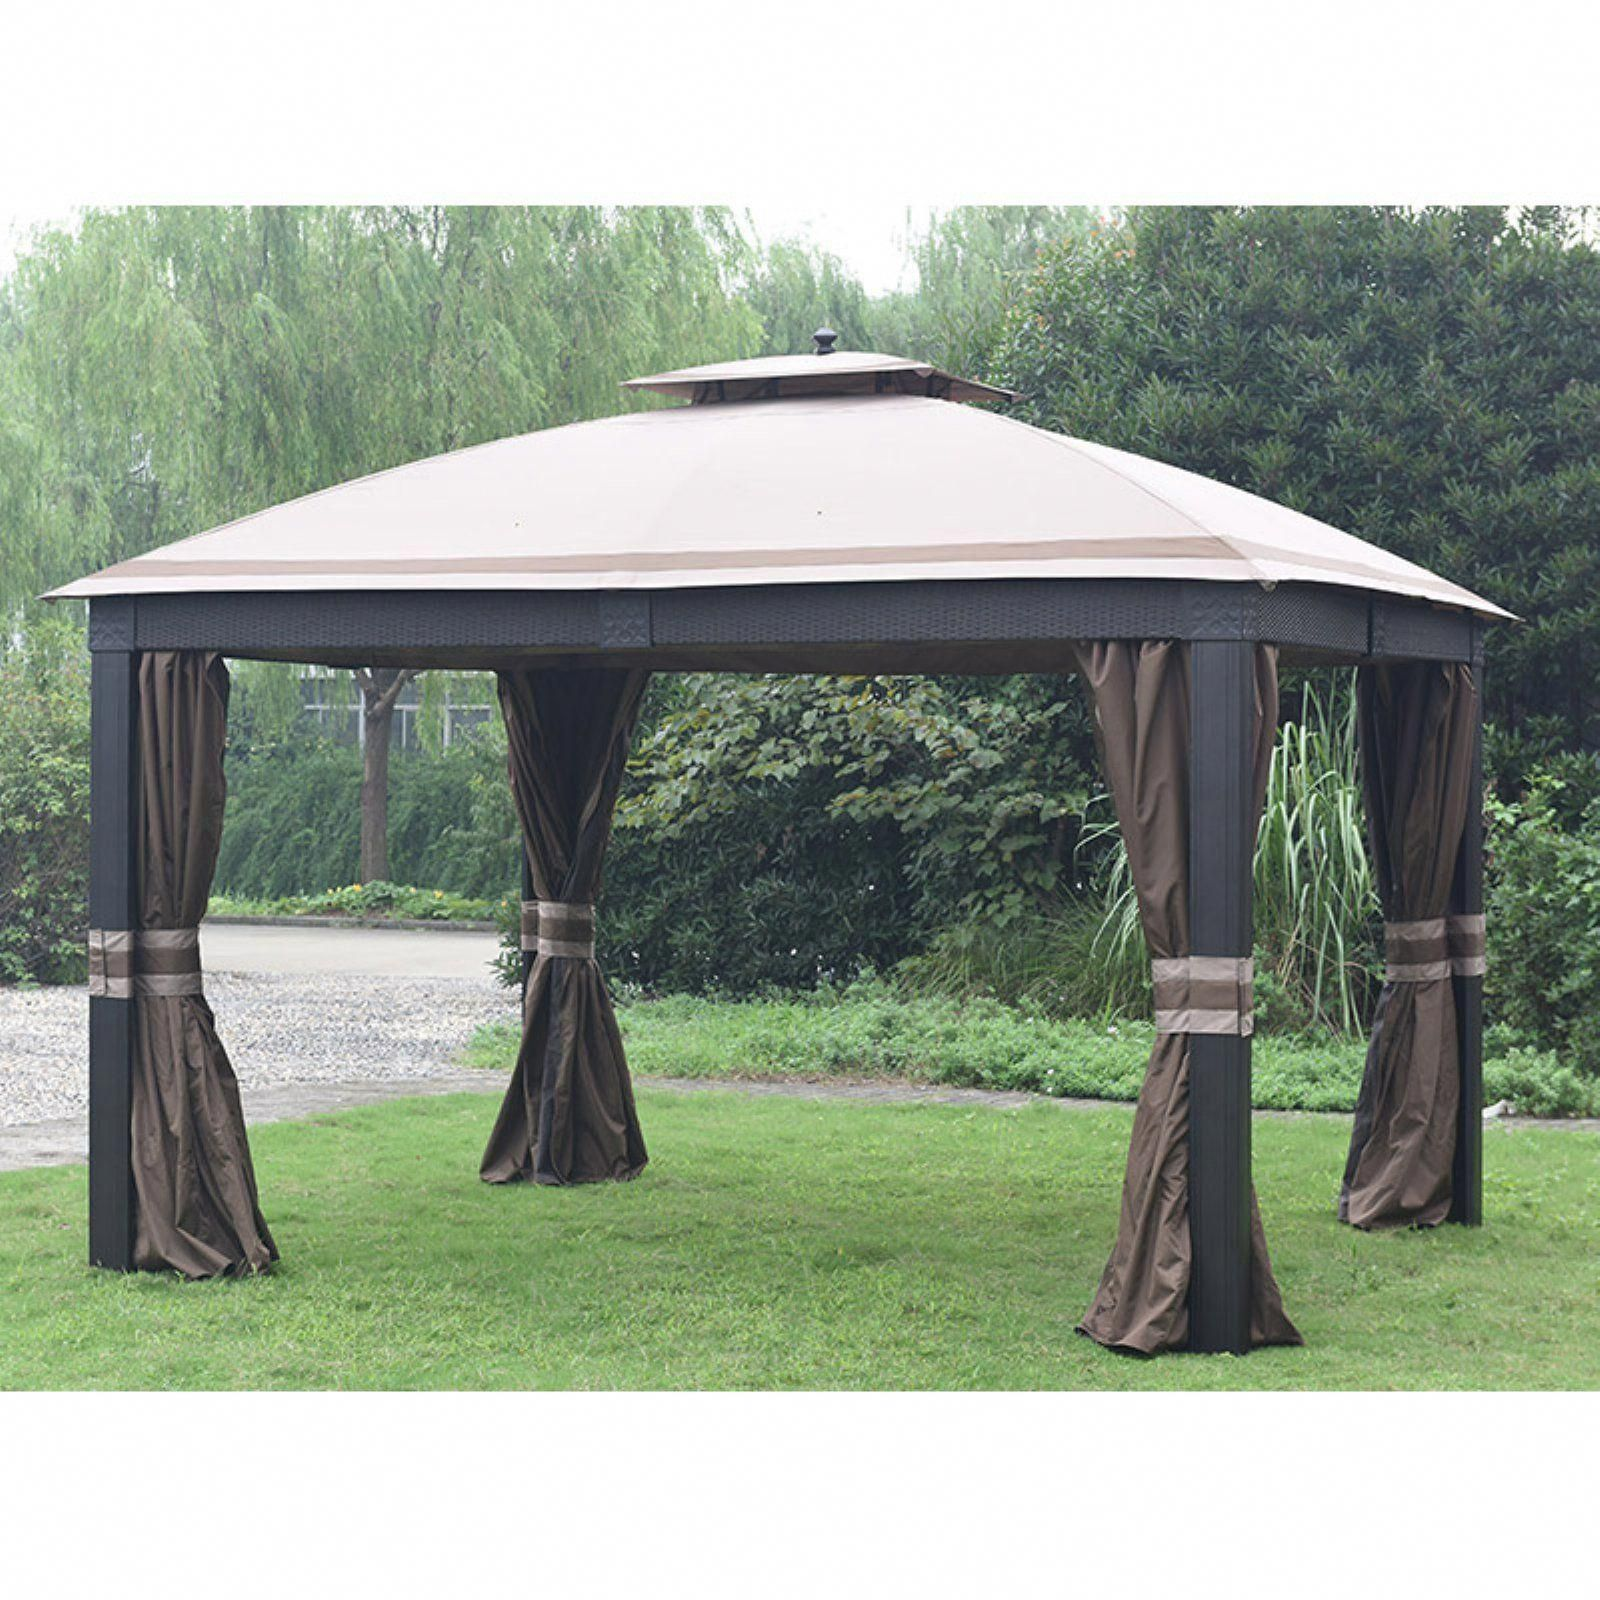 Pin By Beverley Phyfer On Home In 2020 Gazebo Replacement Canopy